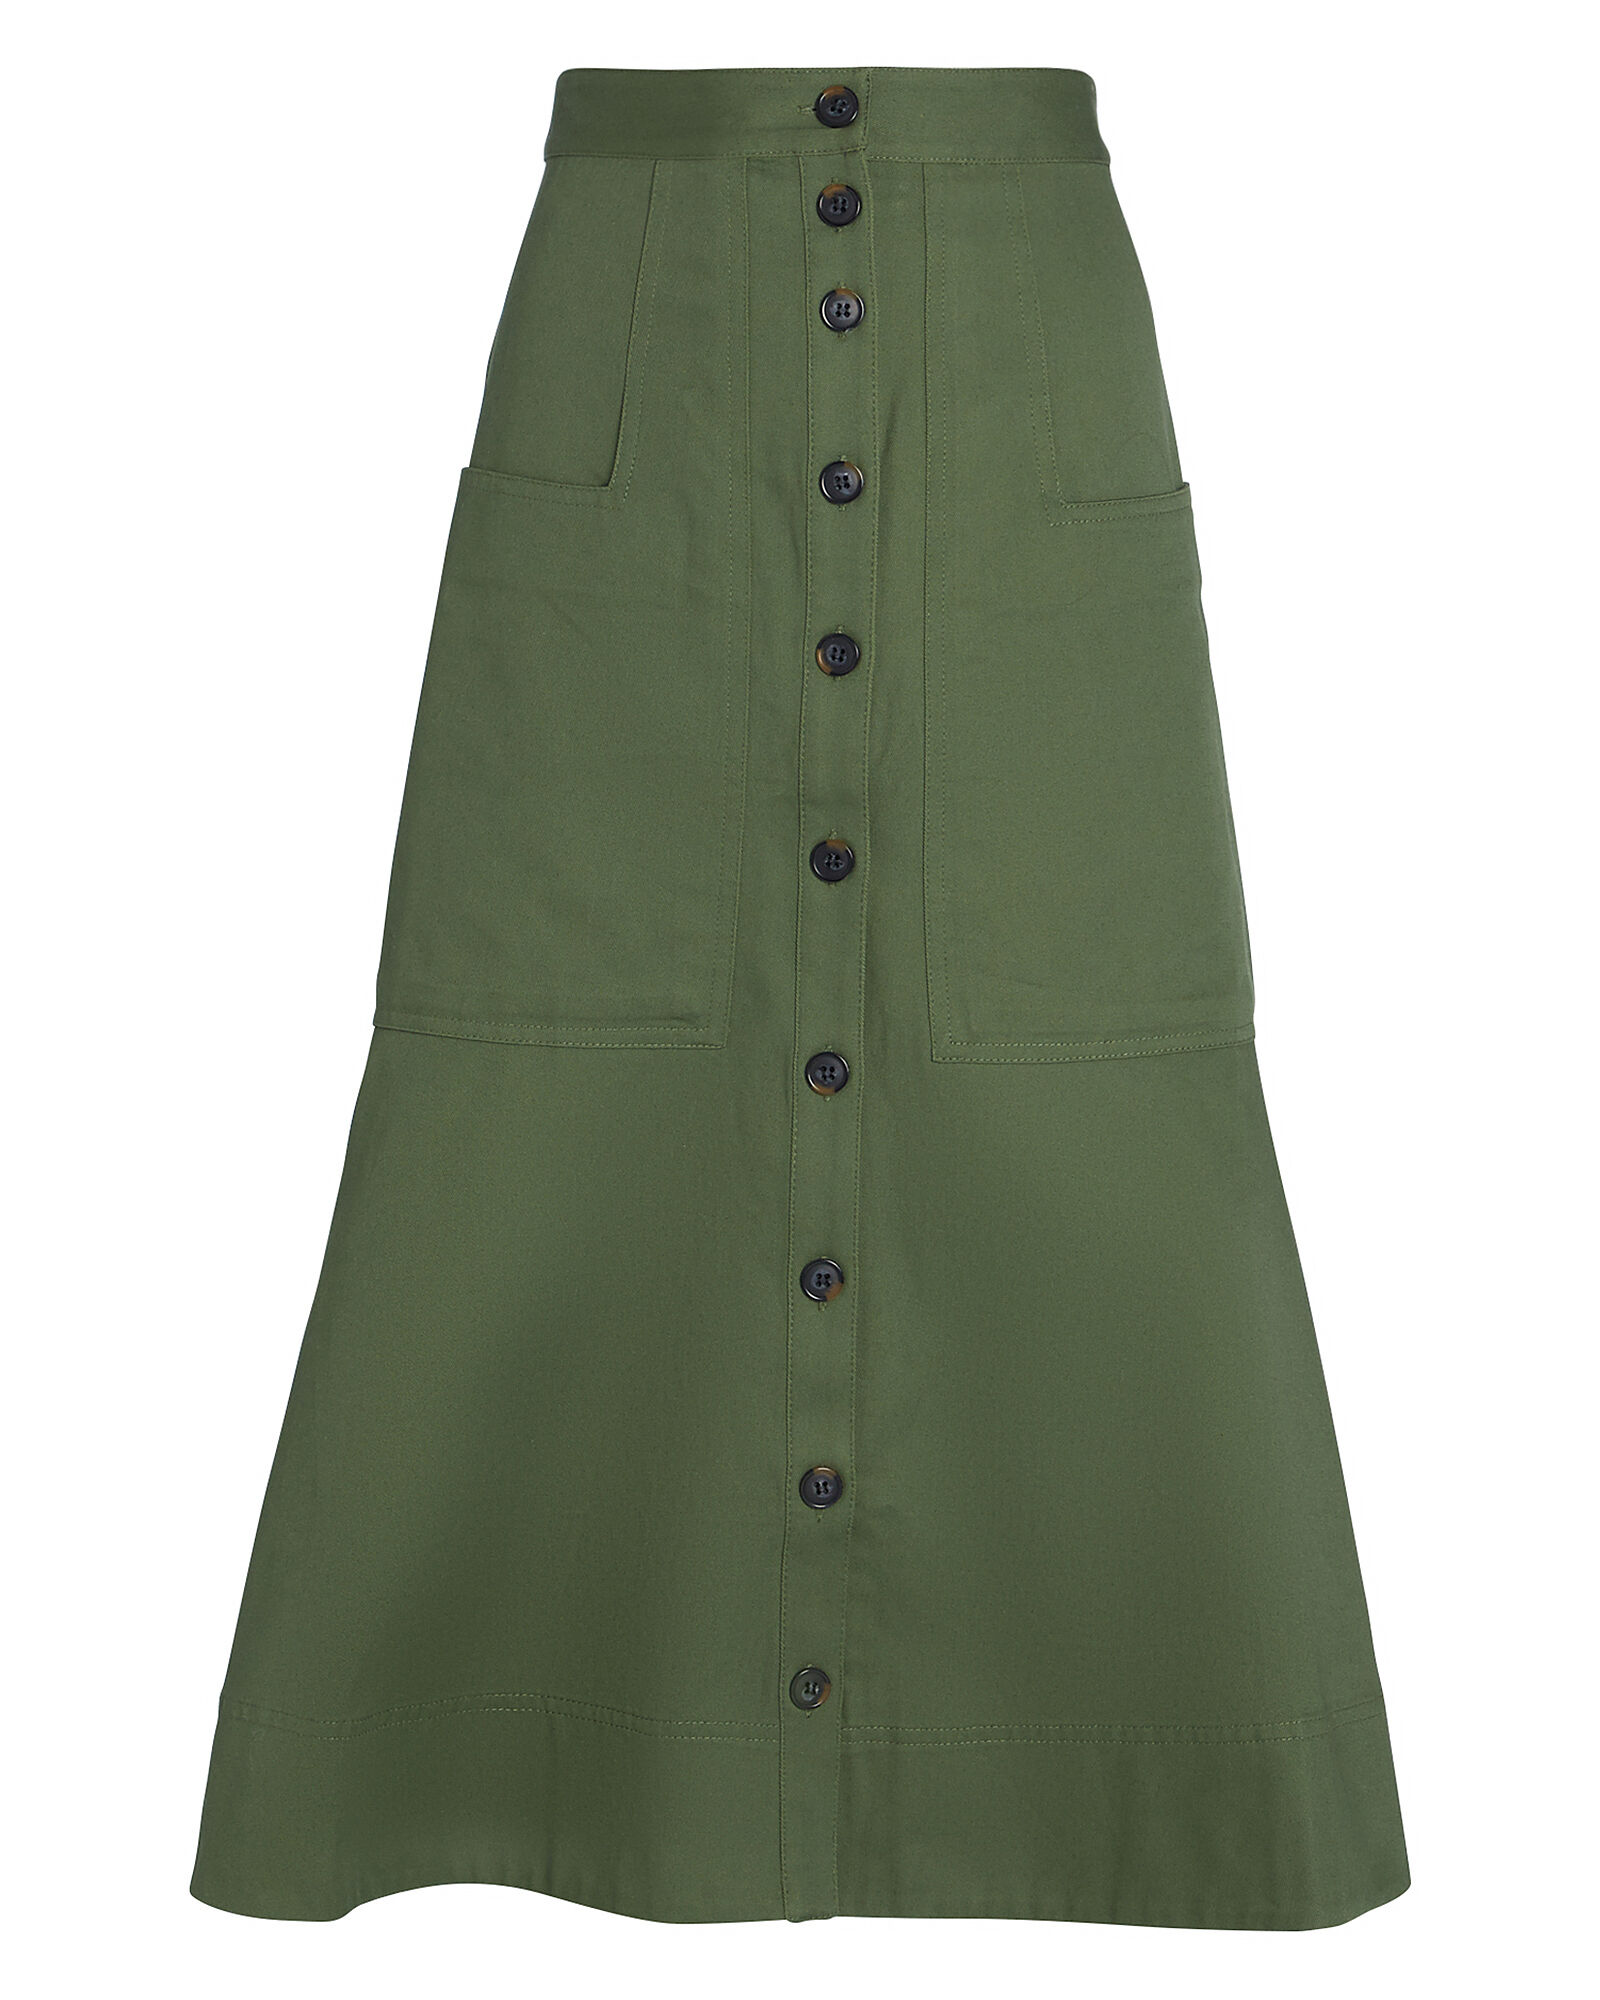 Harrison Chino Midi Skirt, OLIVE/ARMY, hi-res